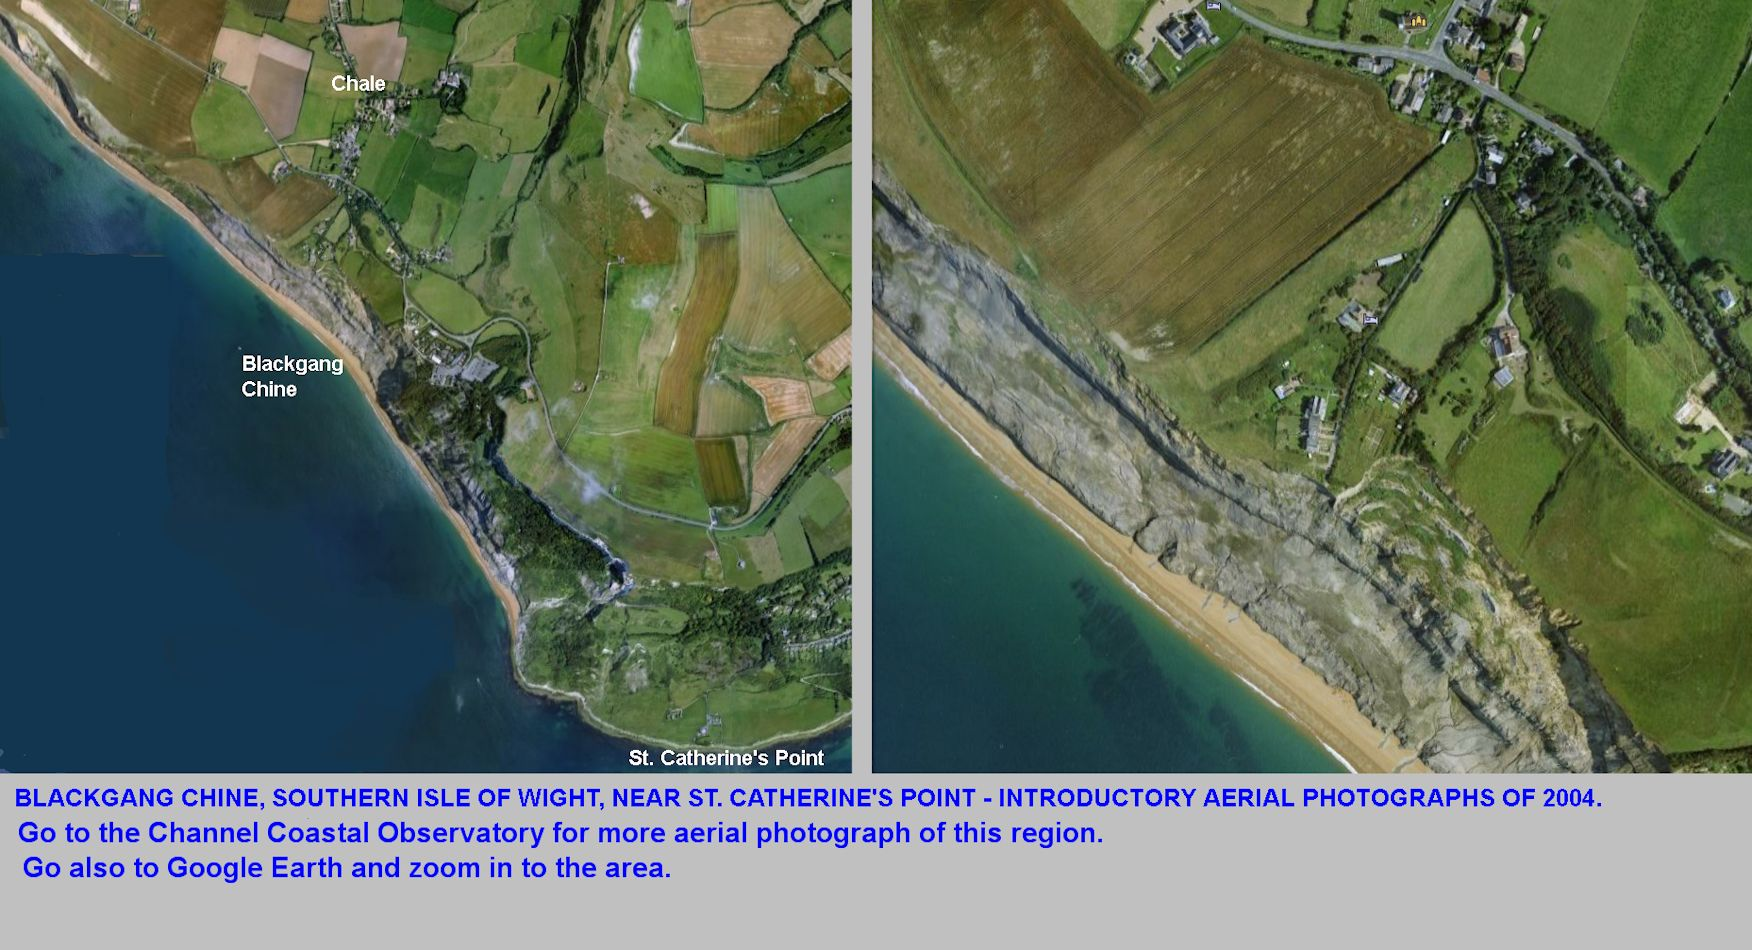 Introductory aerial photographs of Blackgang Chine, Isle of Wight, in 2004